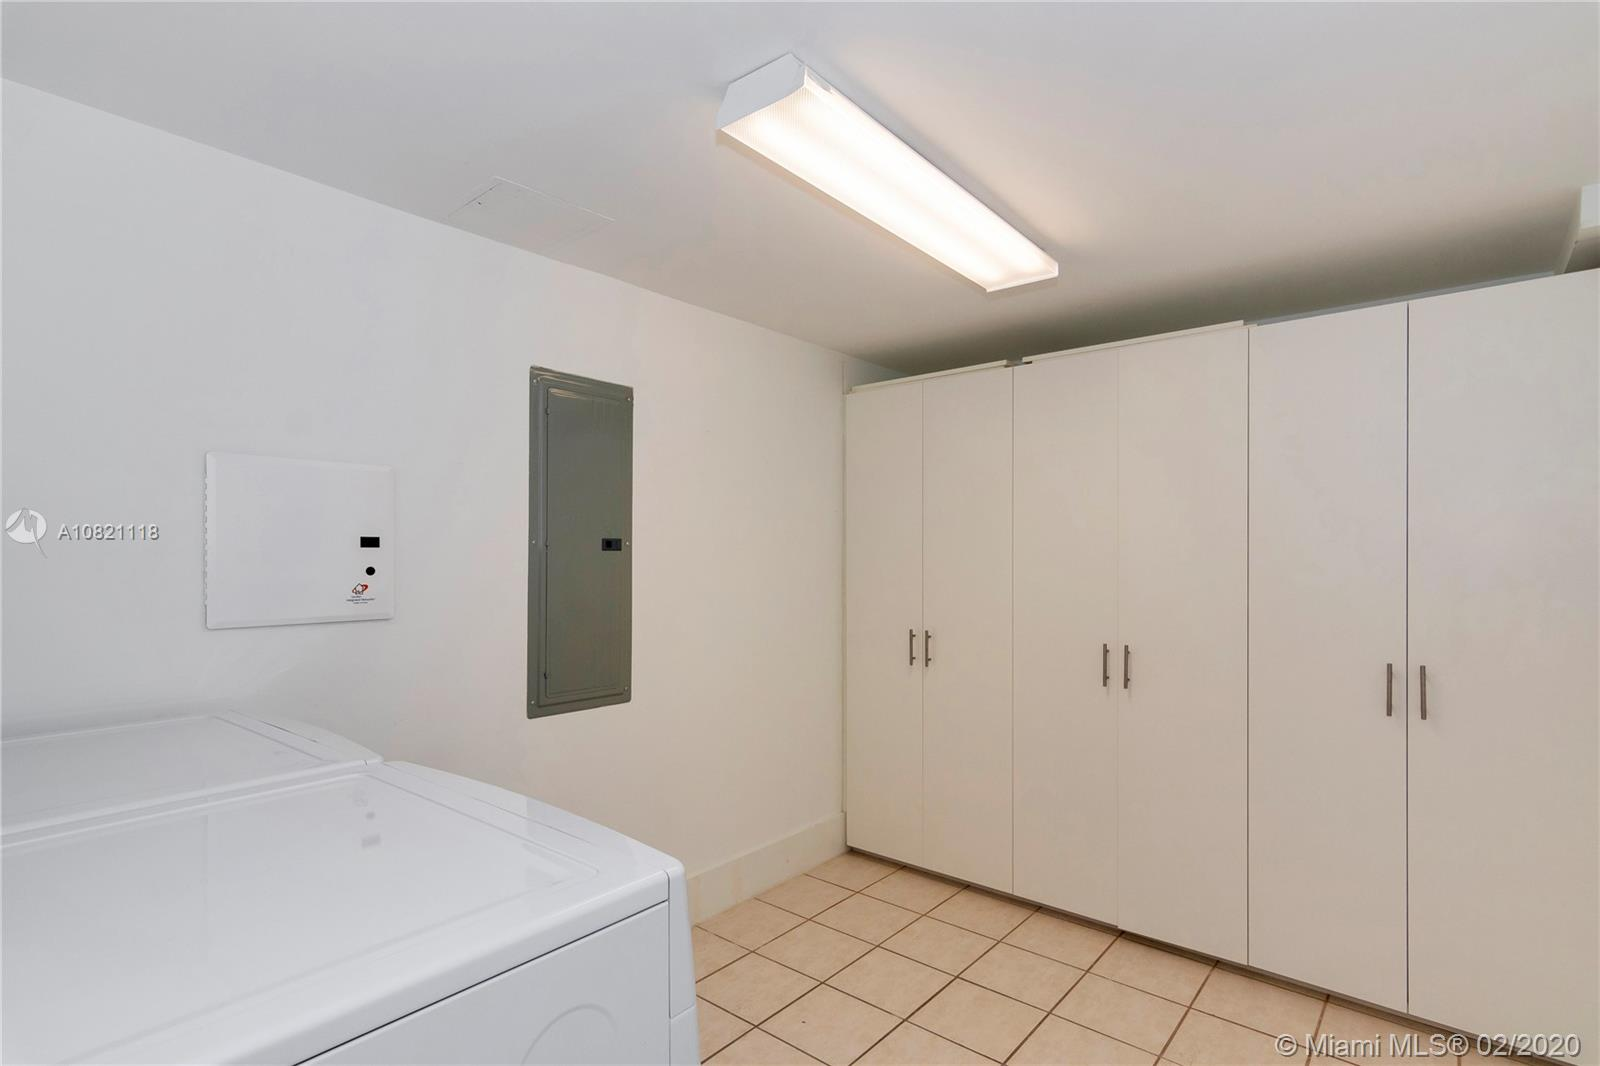 Photo of 3201 NE 183rd Street #2304 listing for Sale